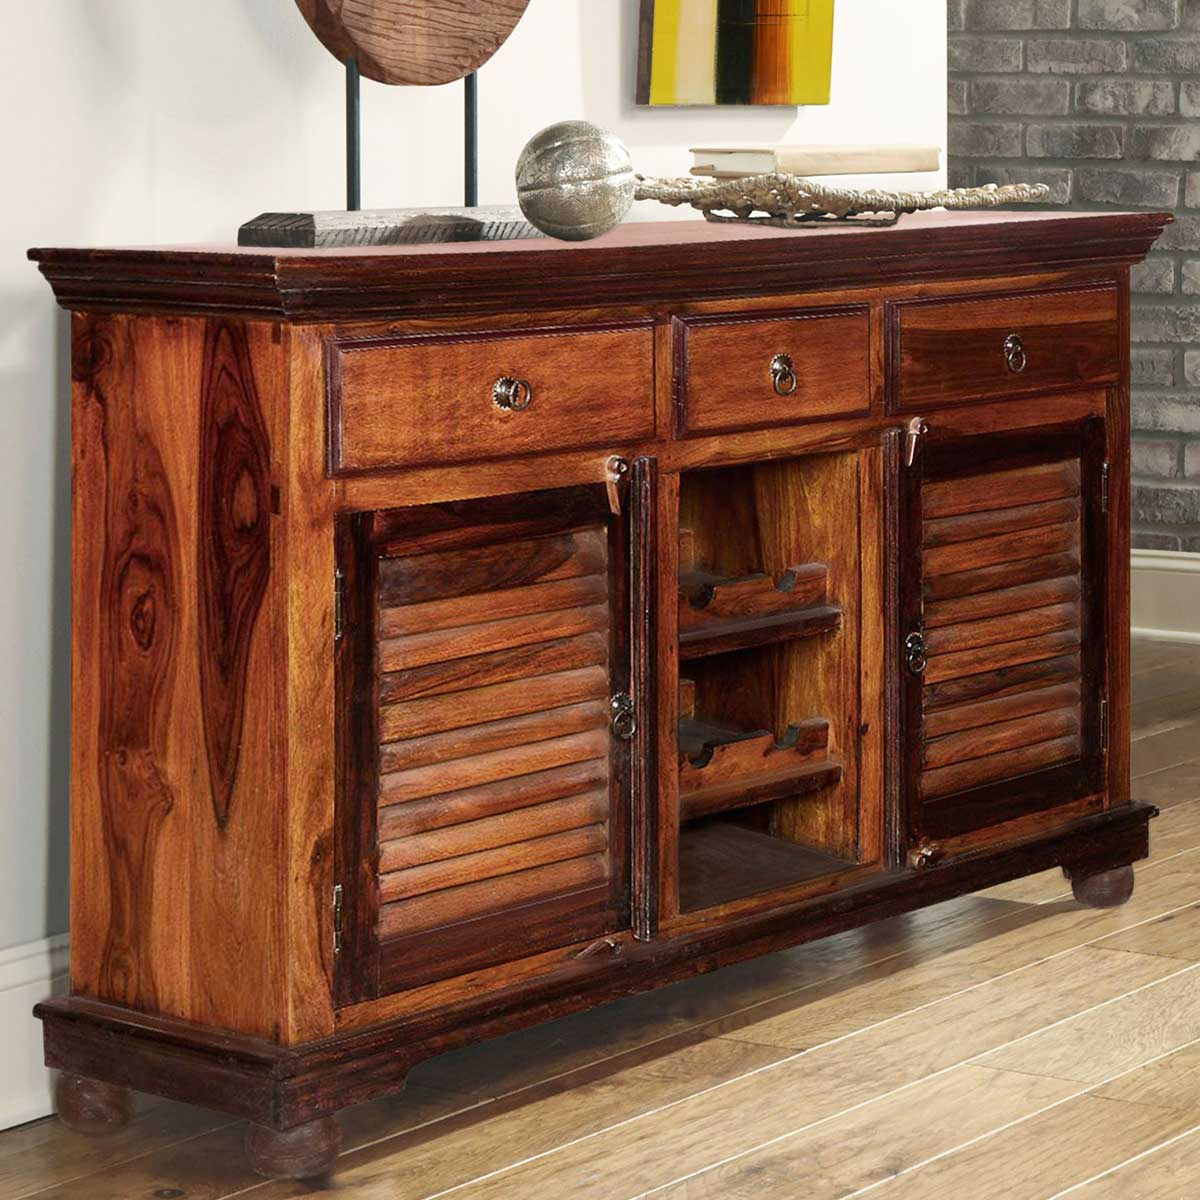 Shaker buffet wine rack solid wood drawer sideboard